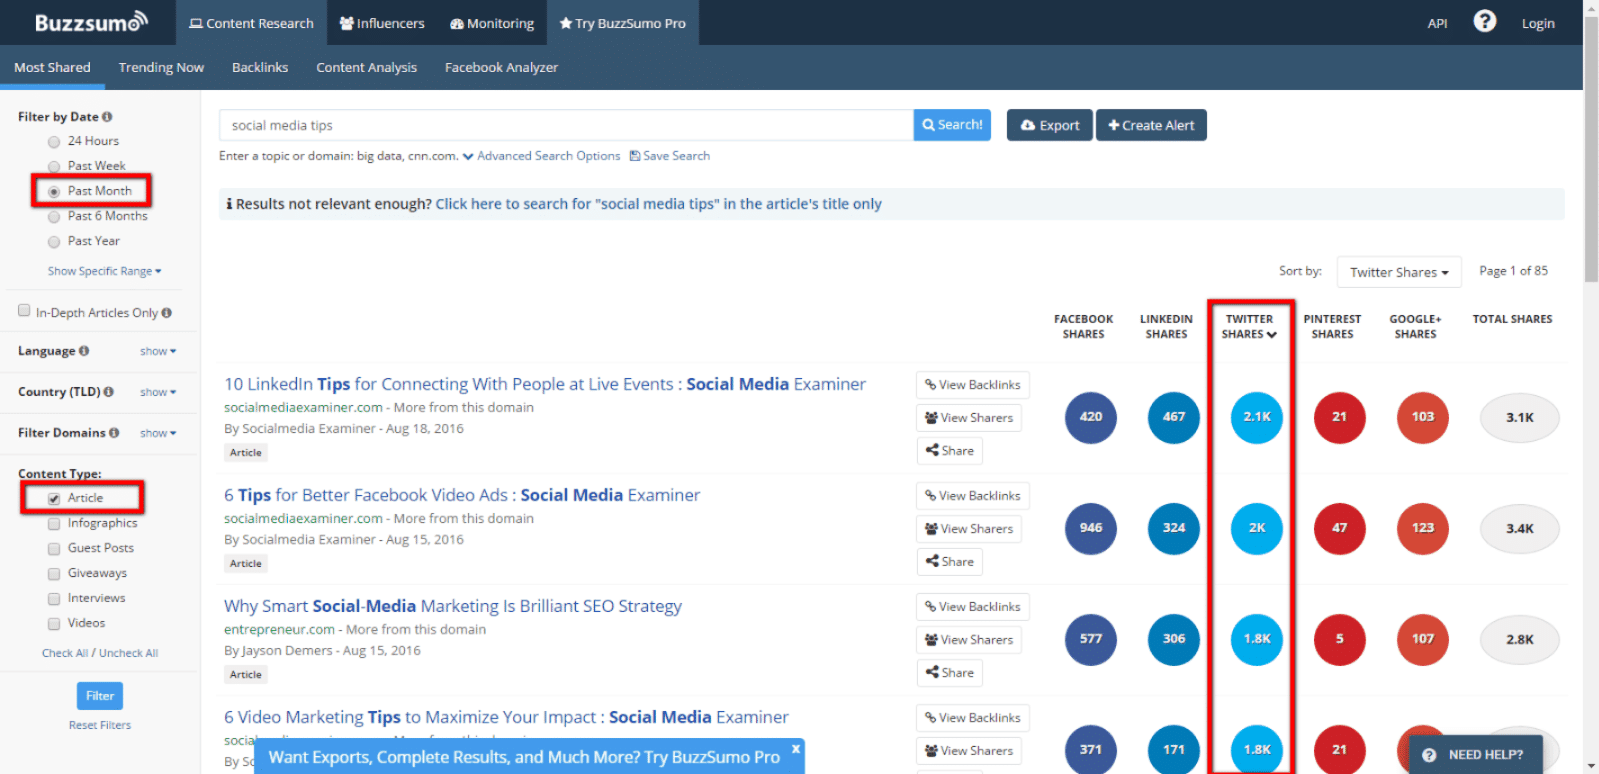 buzzsumo search results filtered